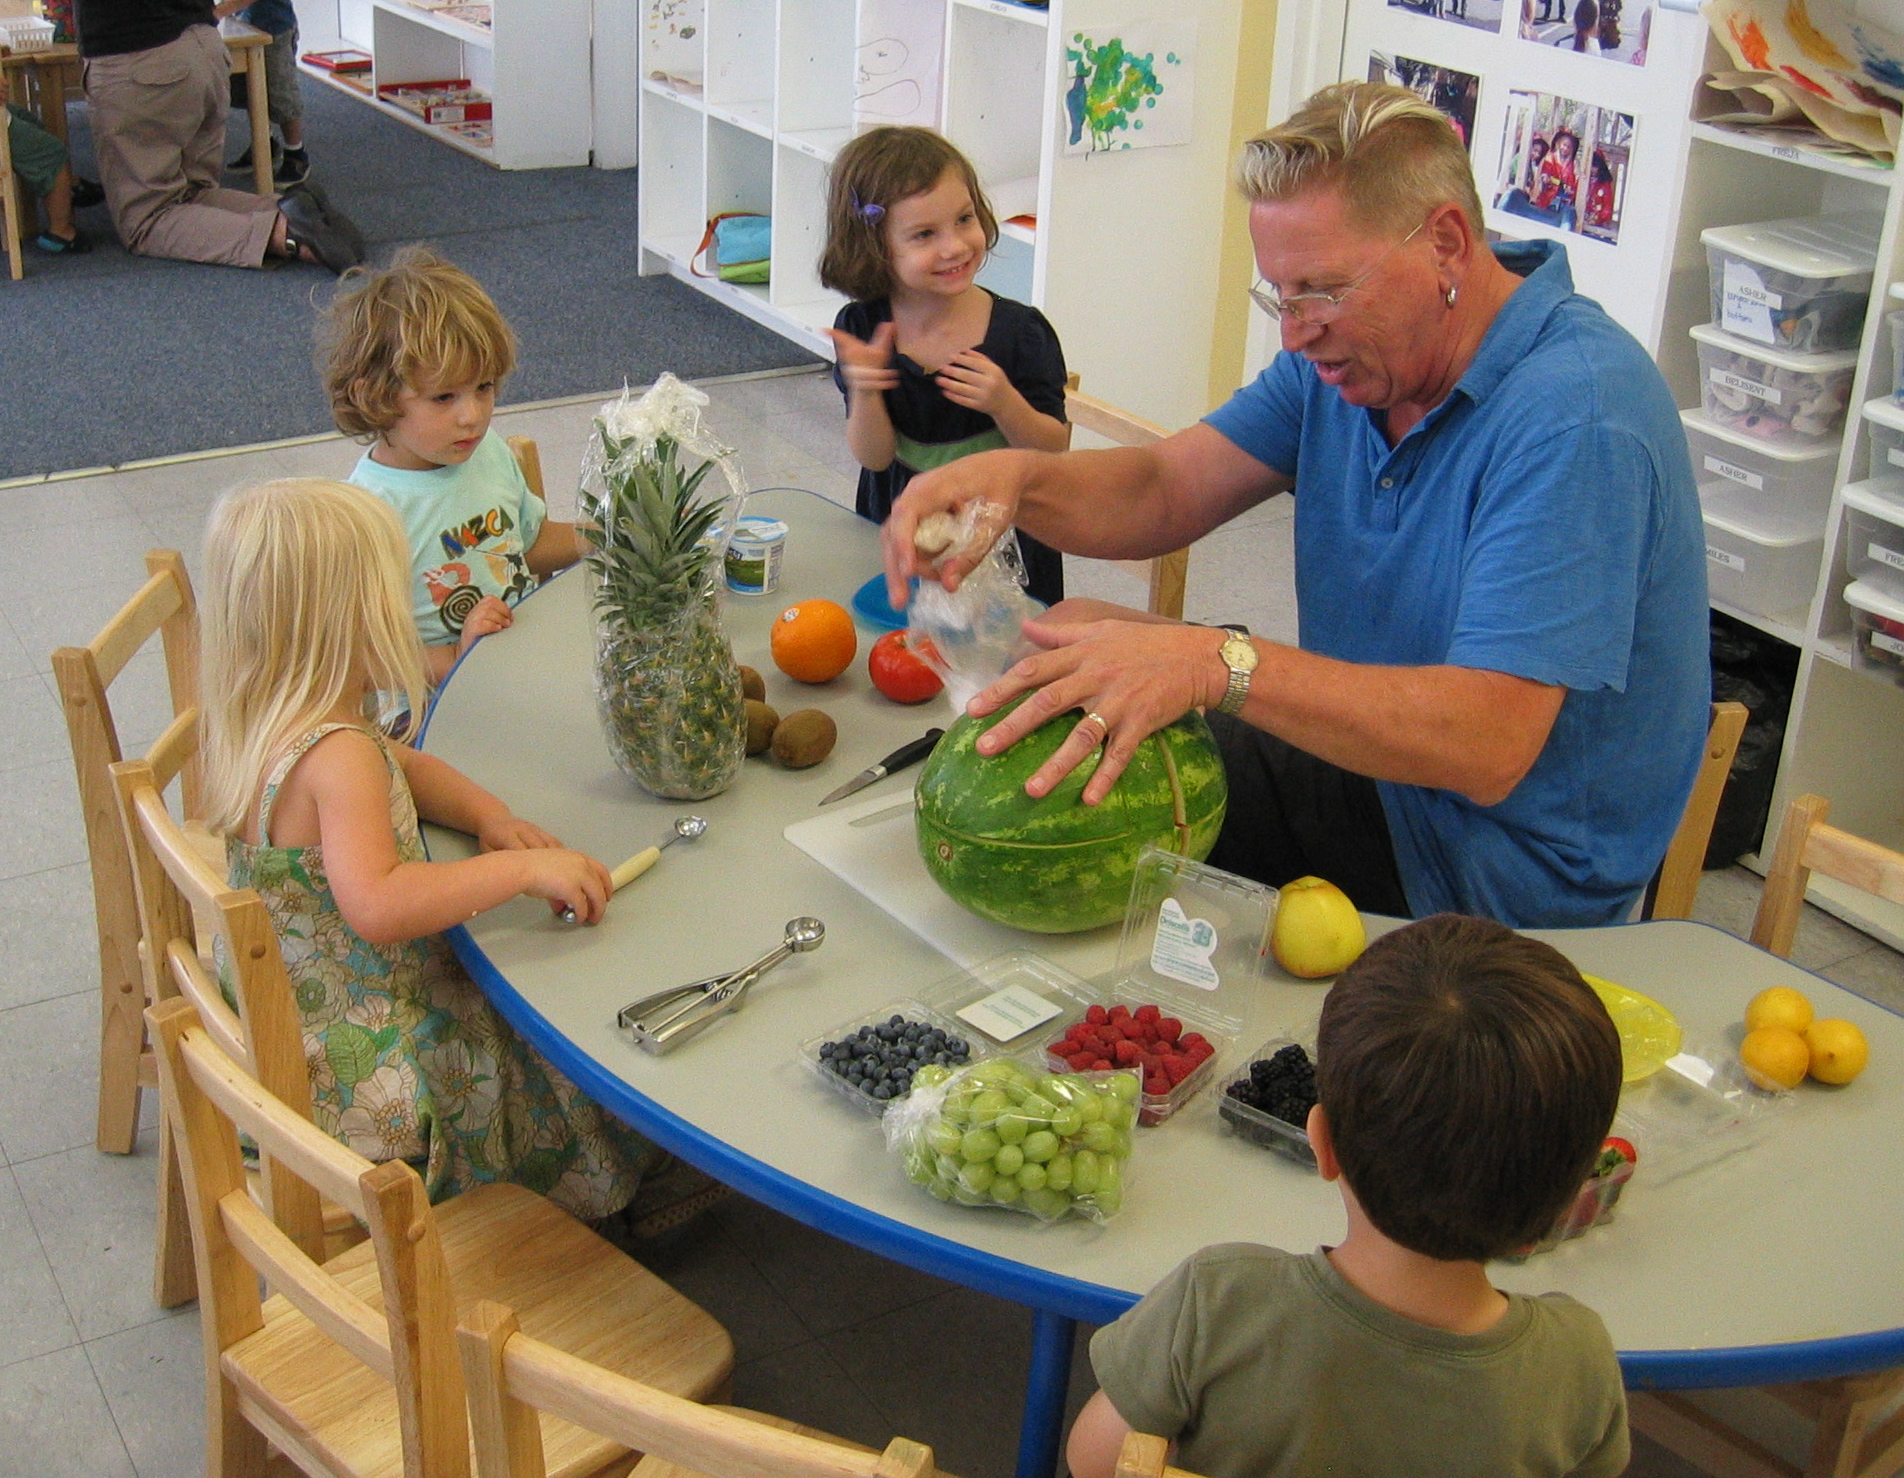 Classroom Cooking Ideas For Kindergarten ~ Cooking in the preschool classroom pictures to pin on